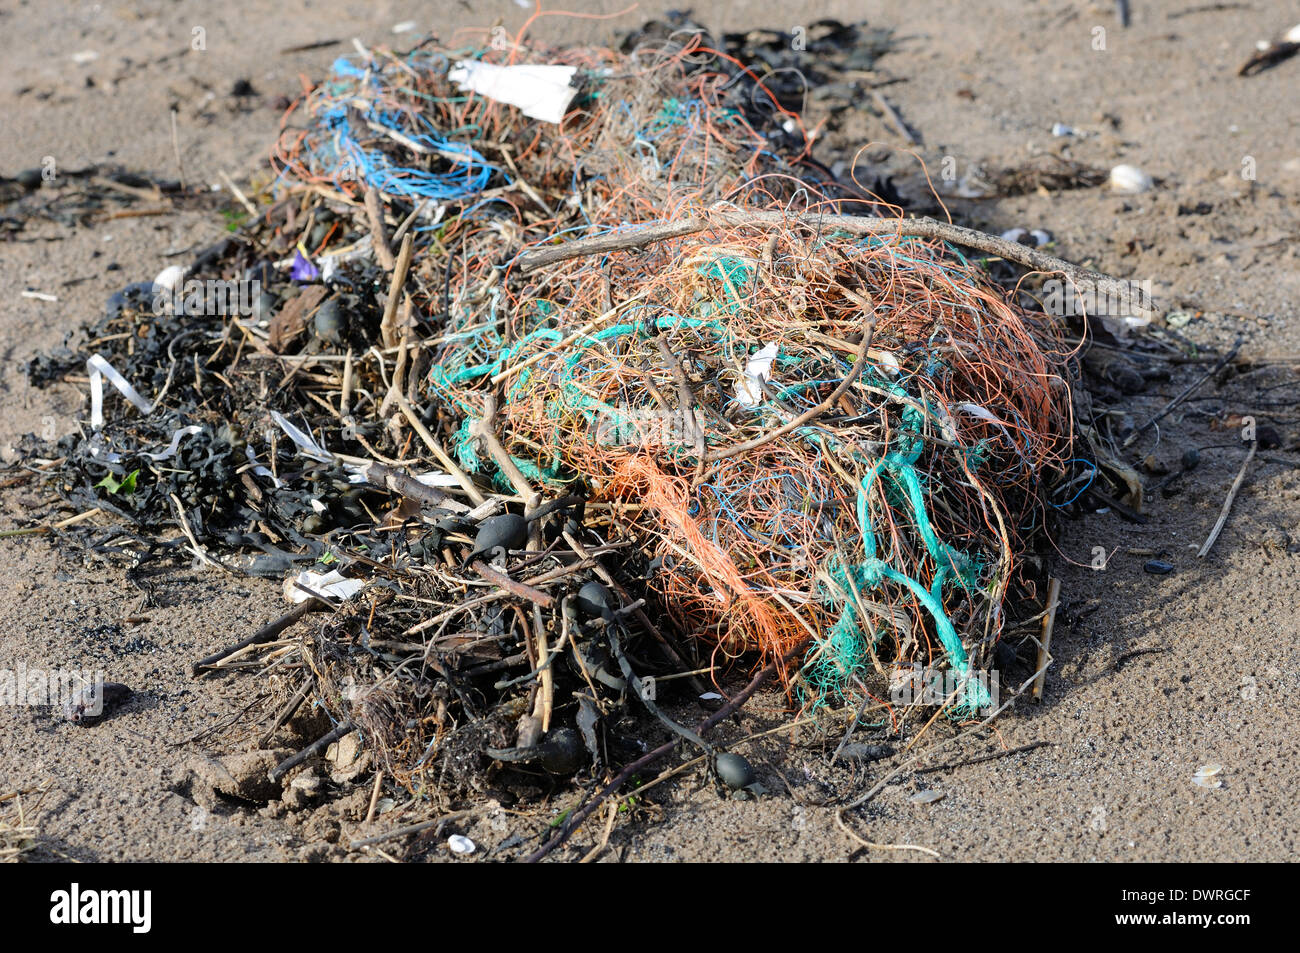 Discarded rubbish on a beach in Troon, Scotland - Stock Image